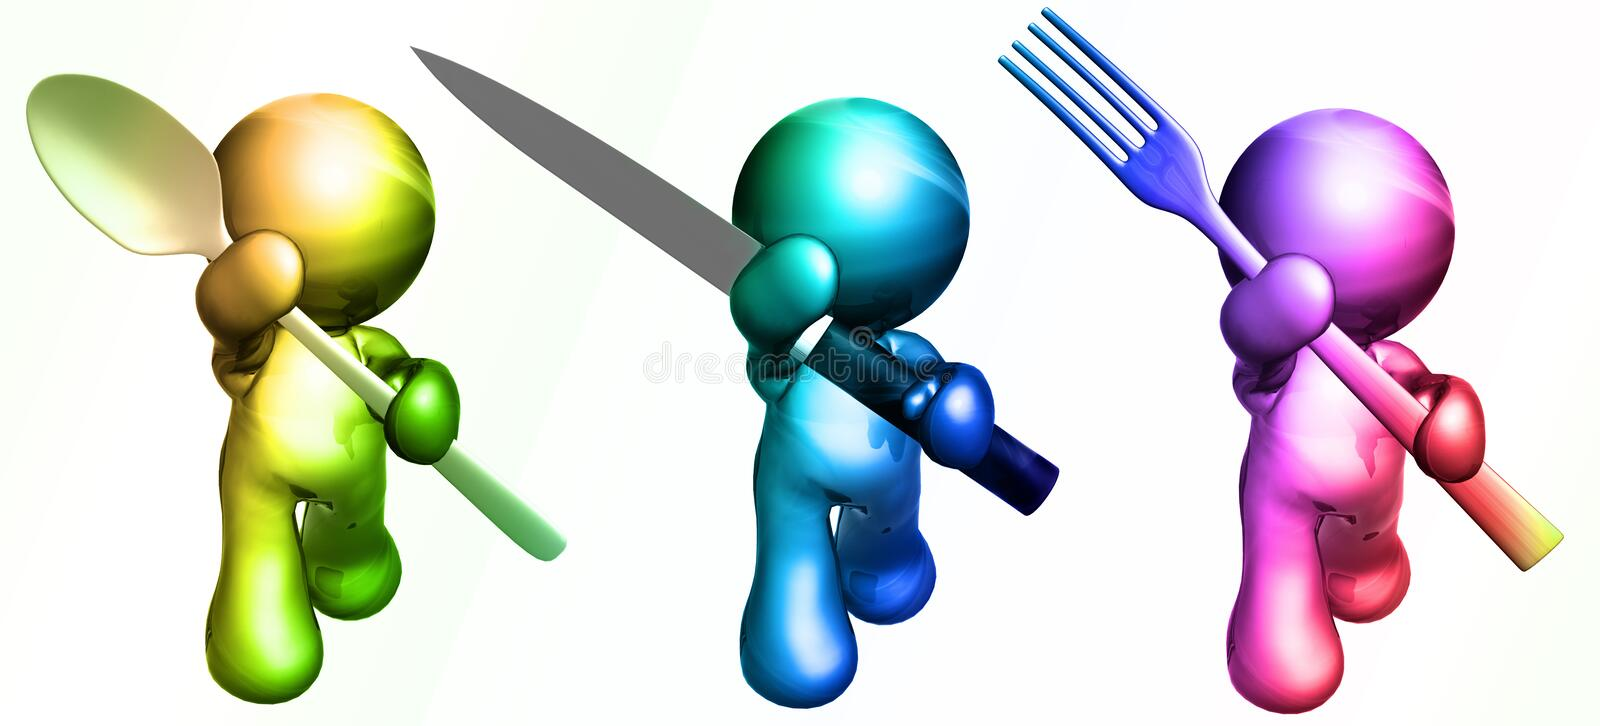 friends with dining utensils royalty free illustration